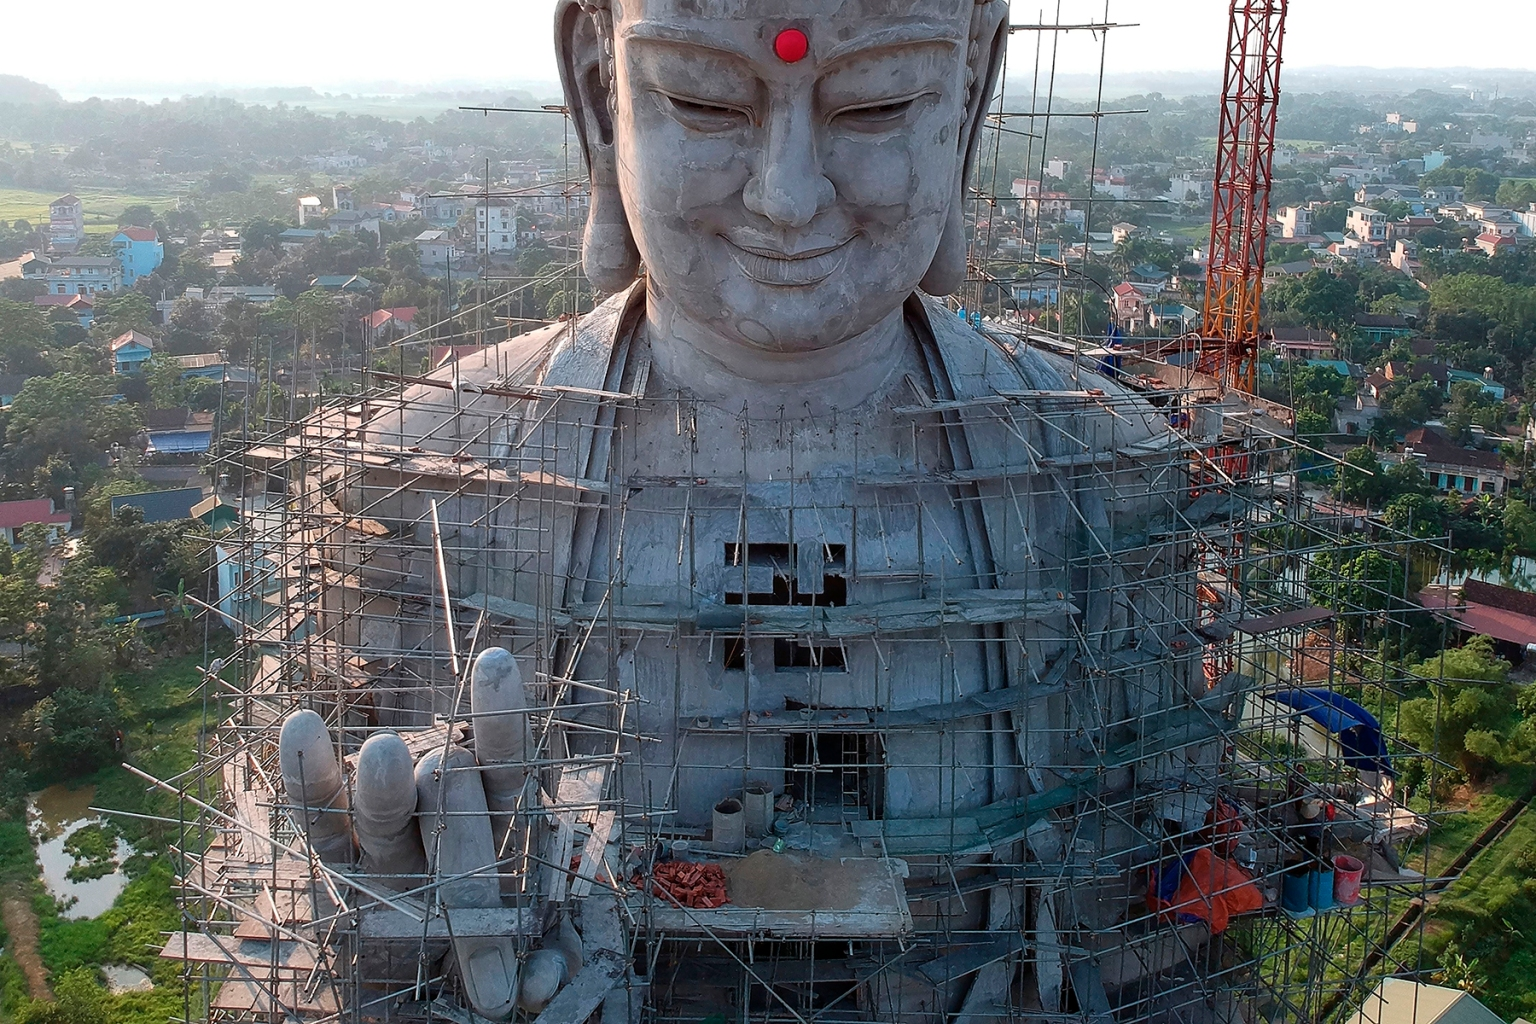 A giant Buddha statue is under construction at Khai Nguyen pagoda on the outskirts of Hanoi on May 18 on the eve of Vesak Day or the Buddha Day festival. MANAN VATSYAYANA/AFP/Getty Images